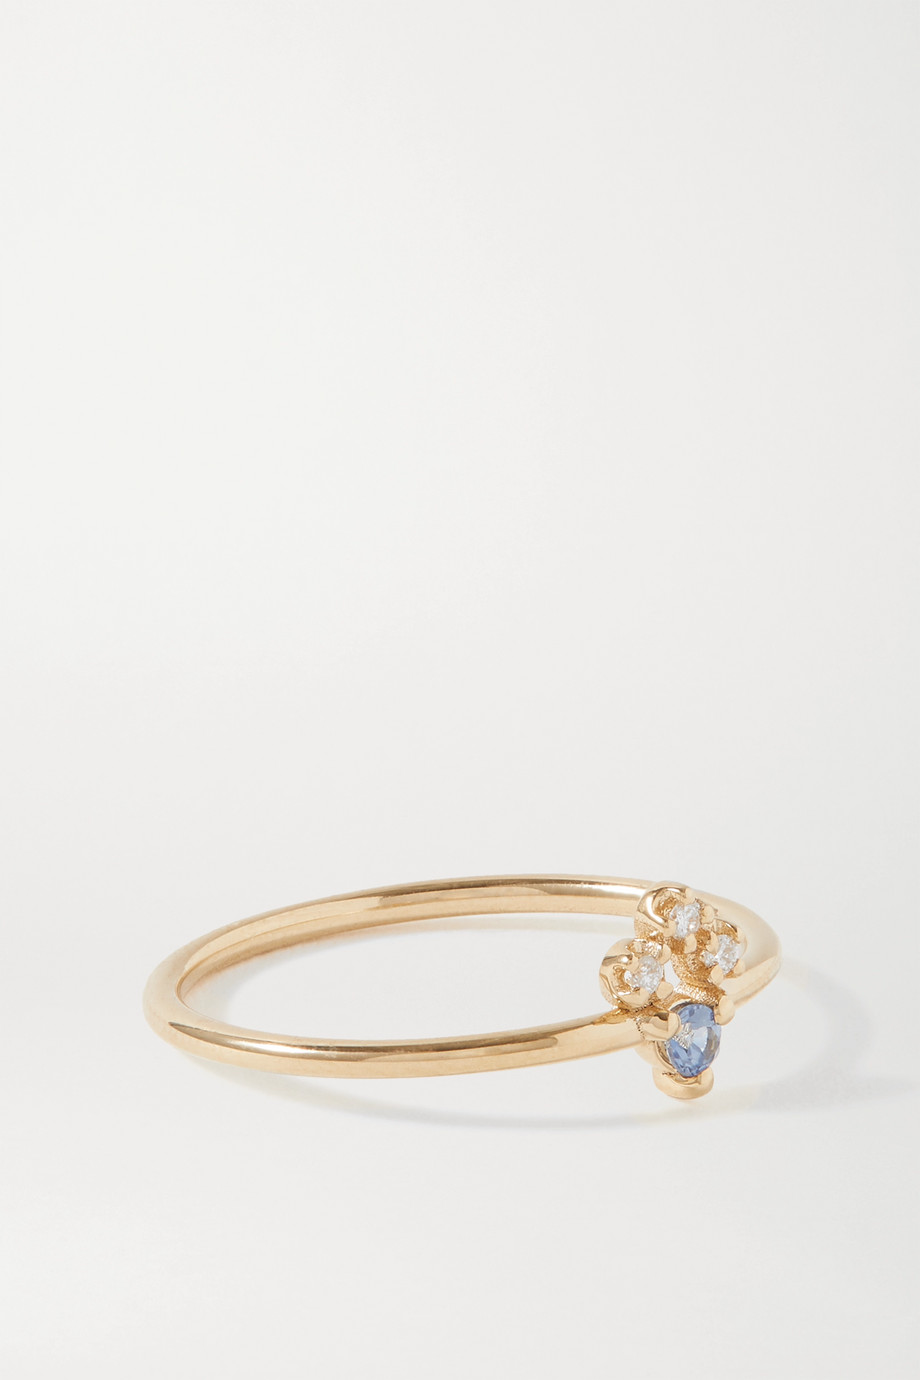 Wwake Bague en or, diamants et saphir Posy